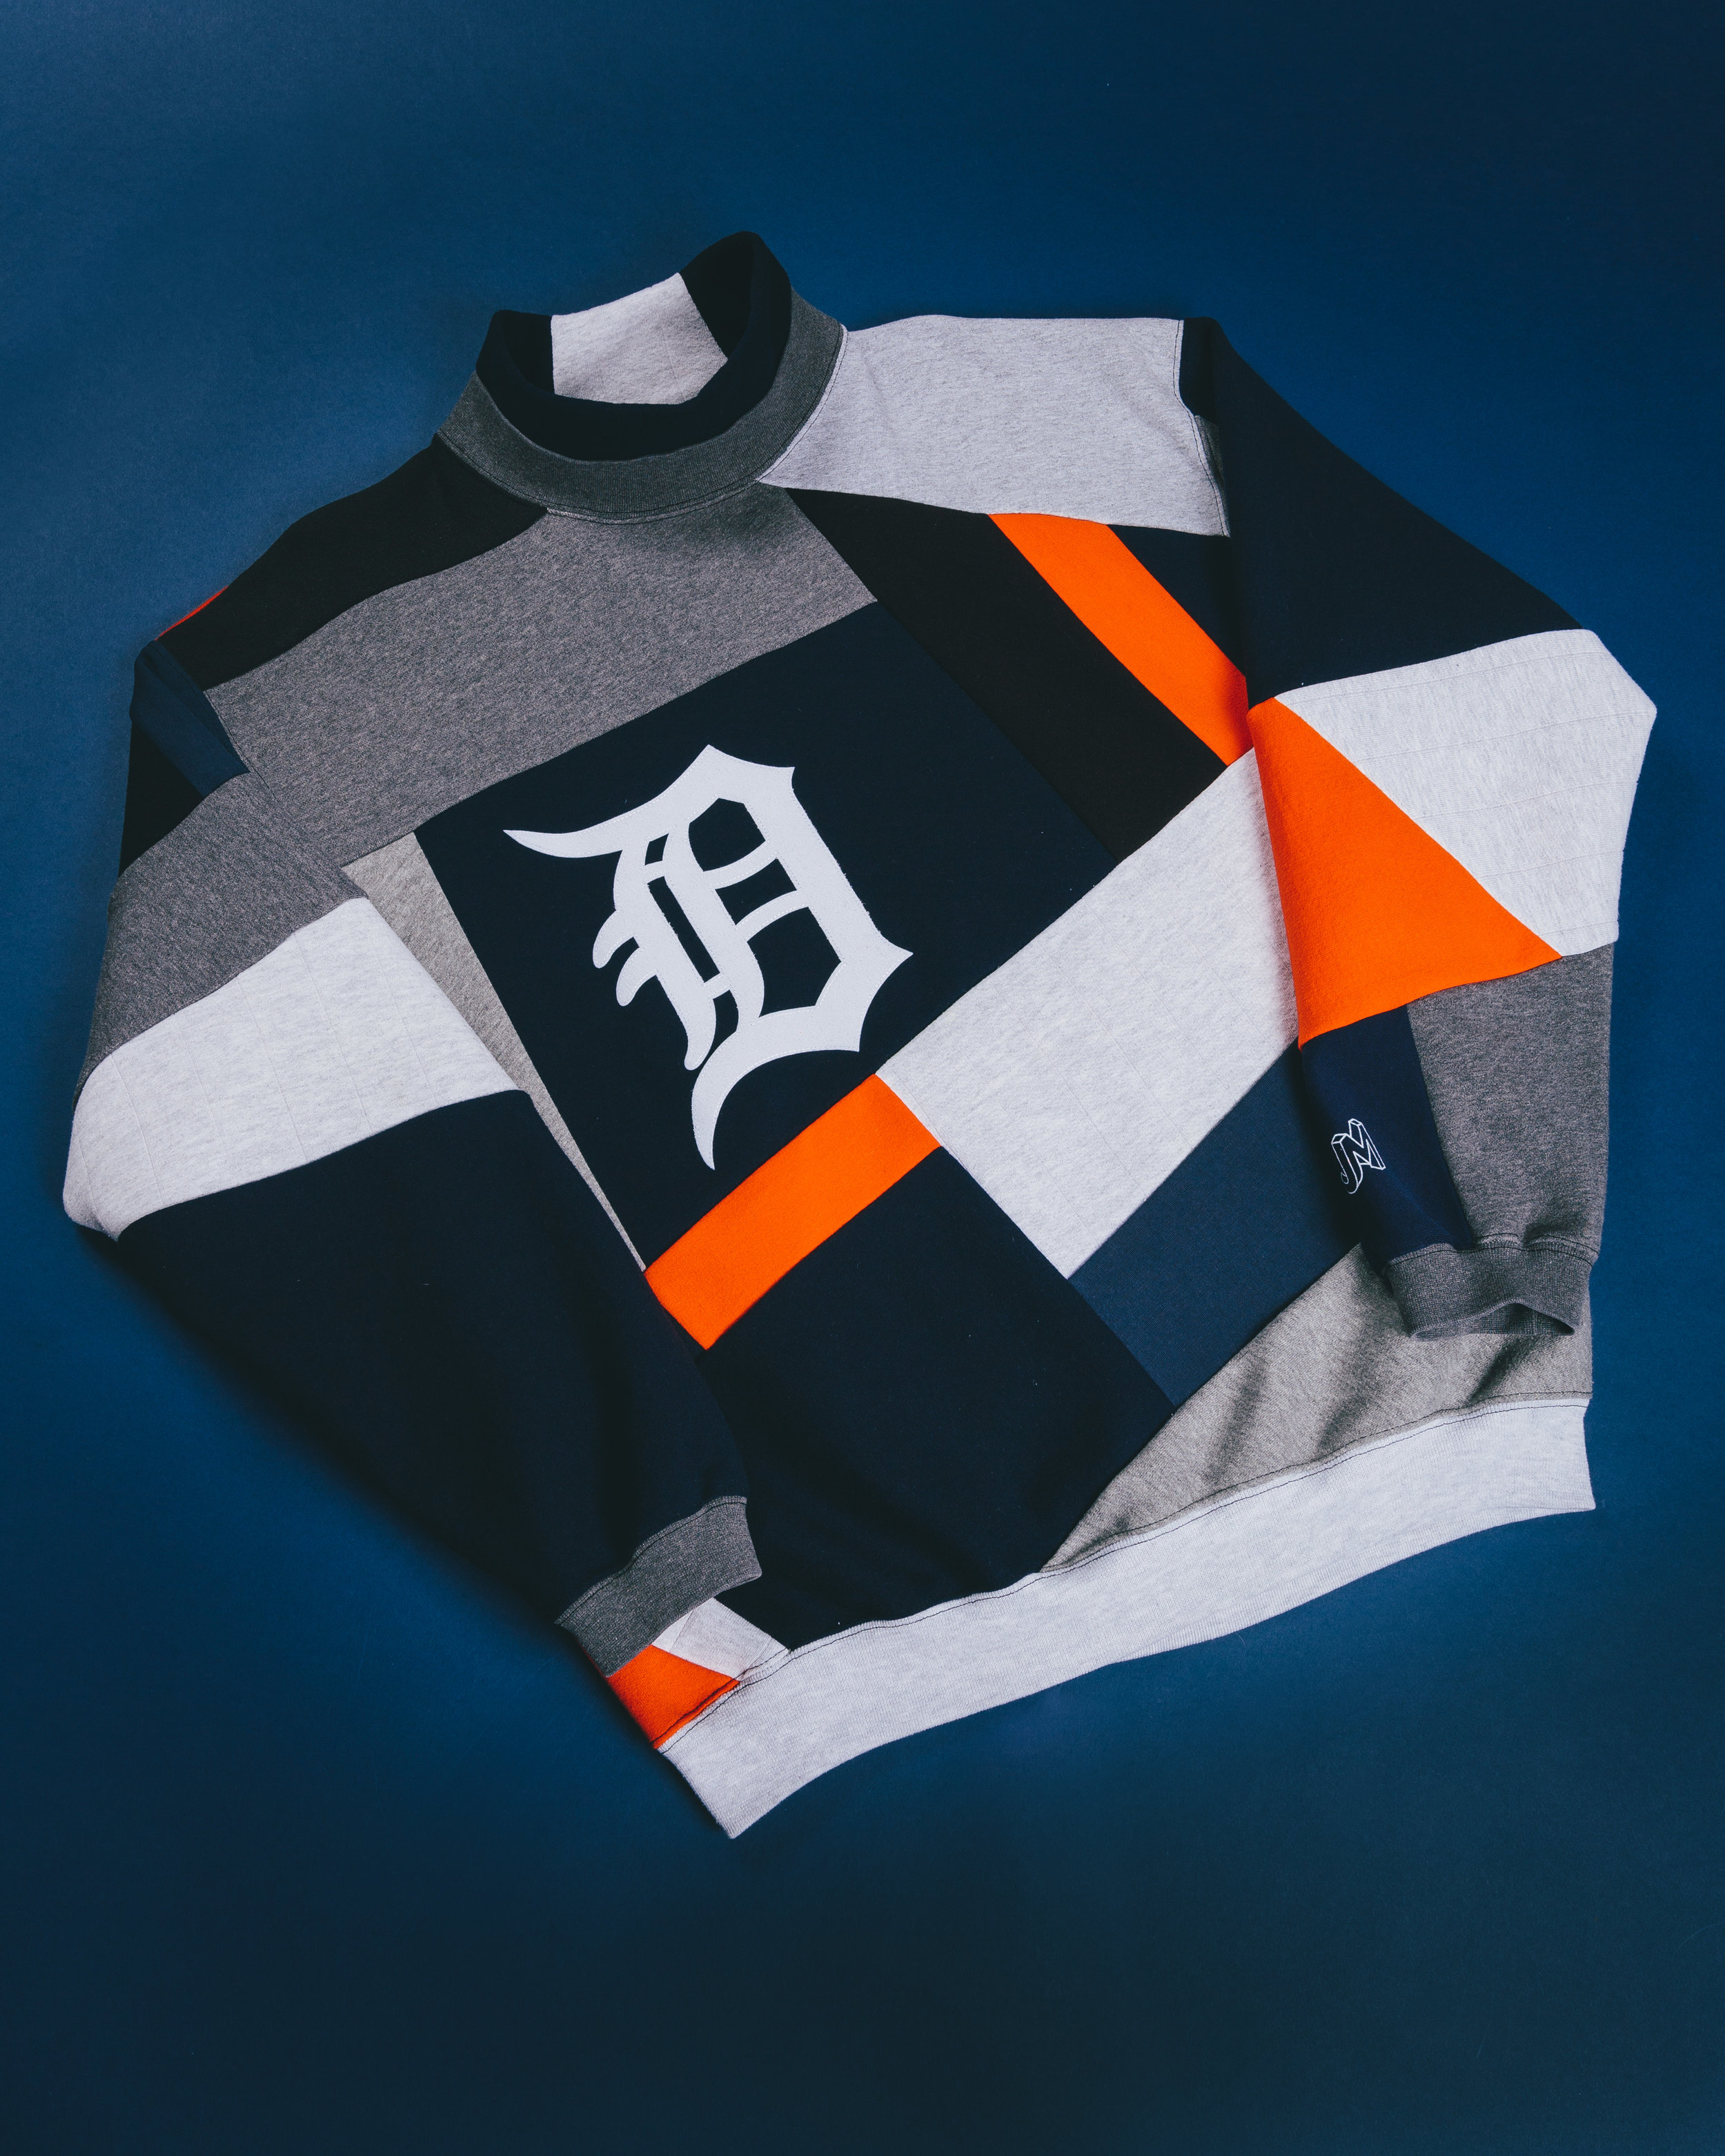 Detroit D Turtleneck  - Dedicated to everyone I know from Michigan & Detroit. Classic English Font Detroit D.